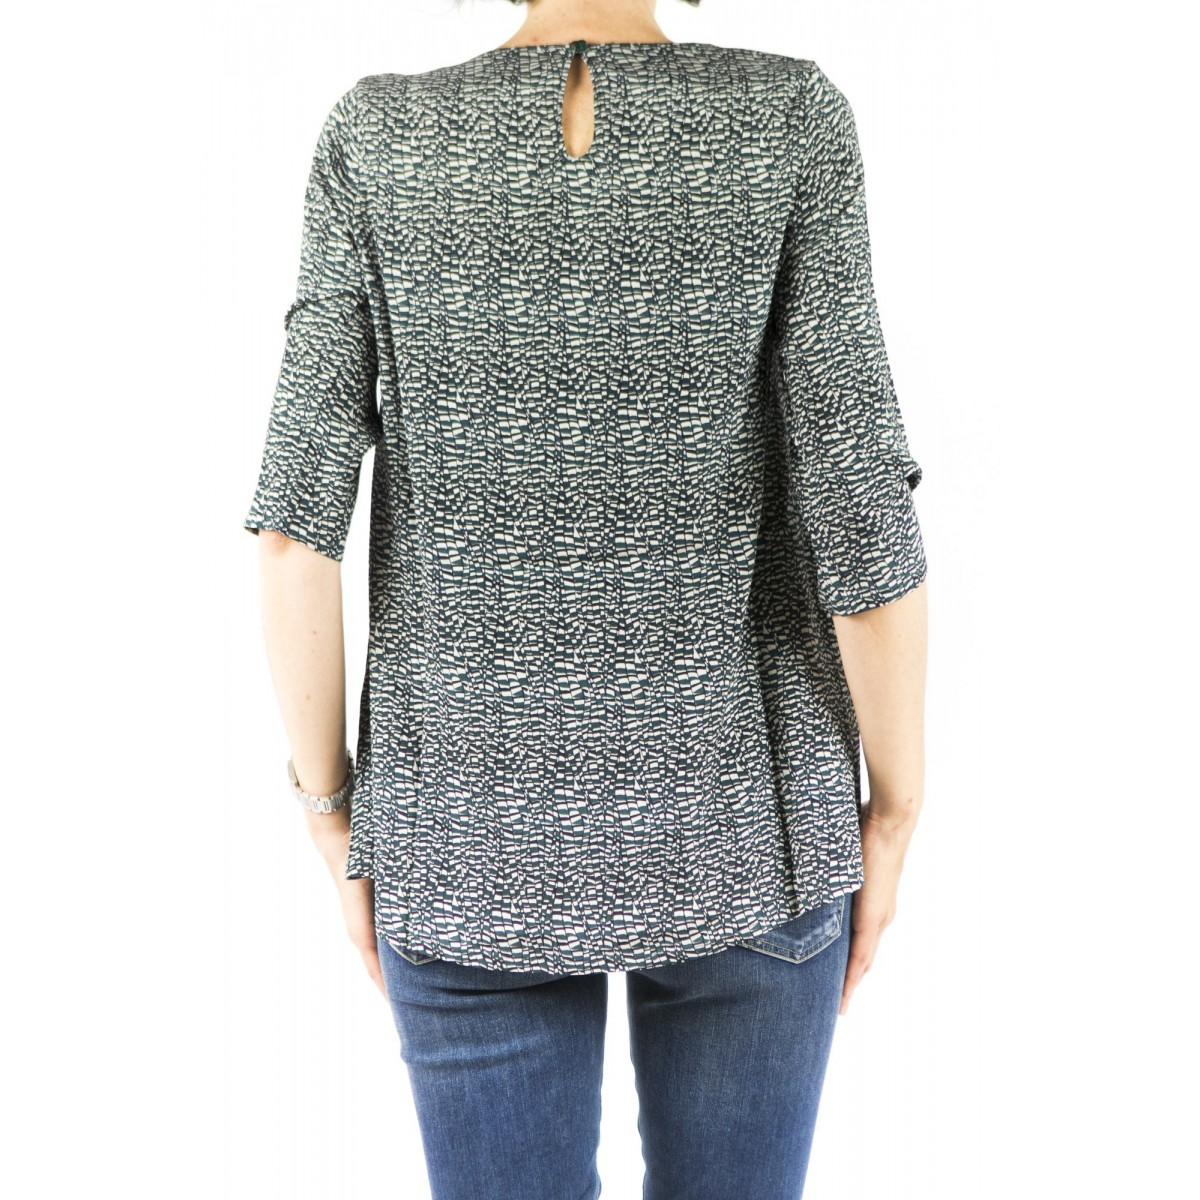 Shirt Kangra Woman - 9908/90 97 - SIEPE